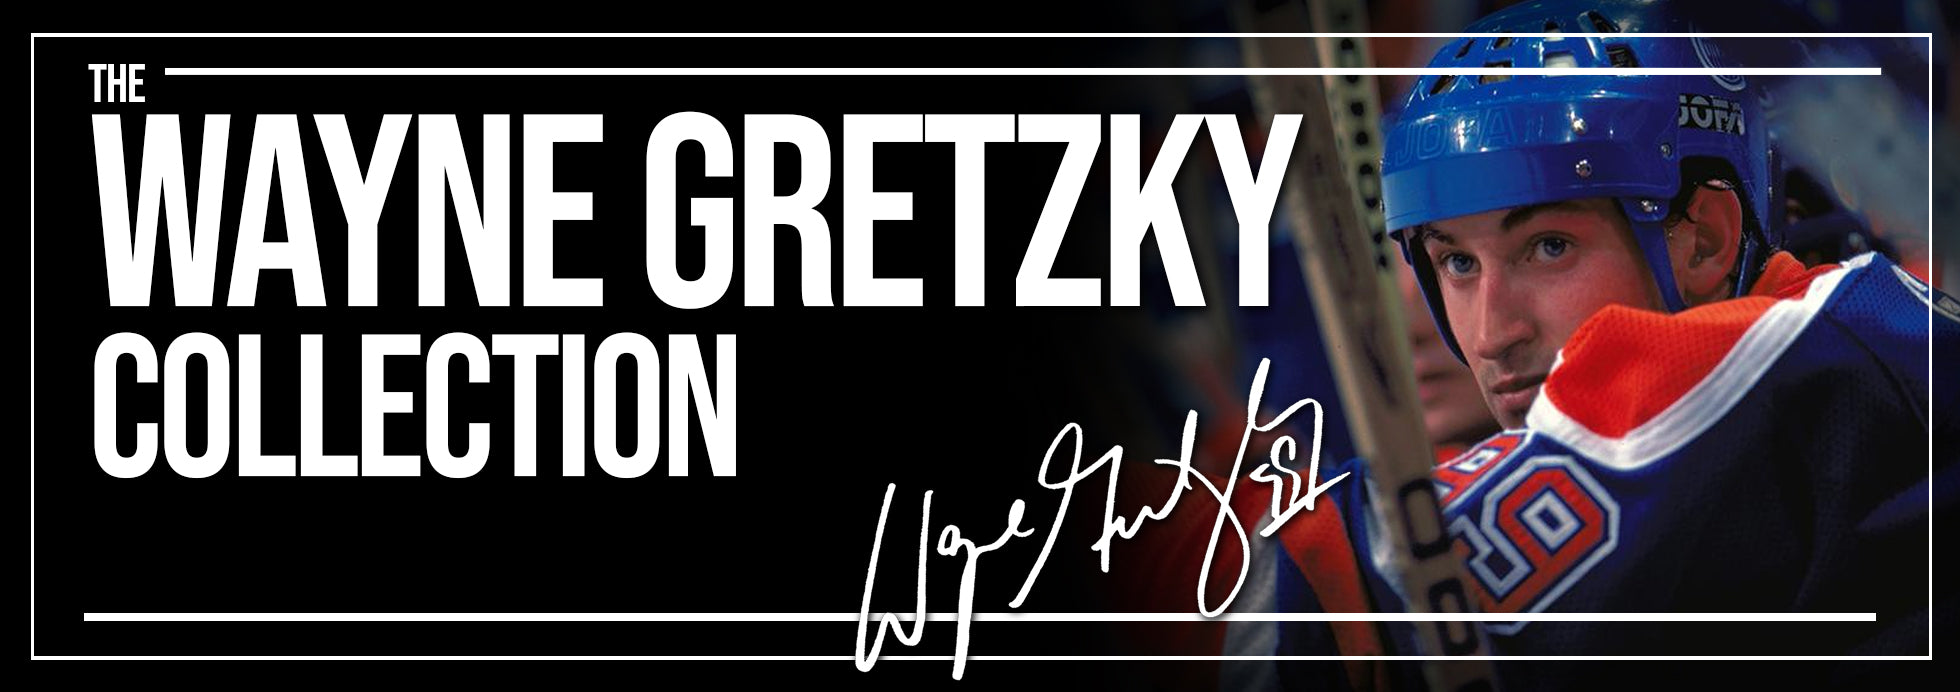 Wayne Gretzky Collection Banner